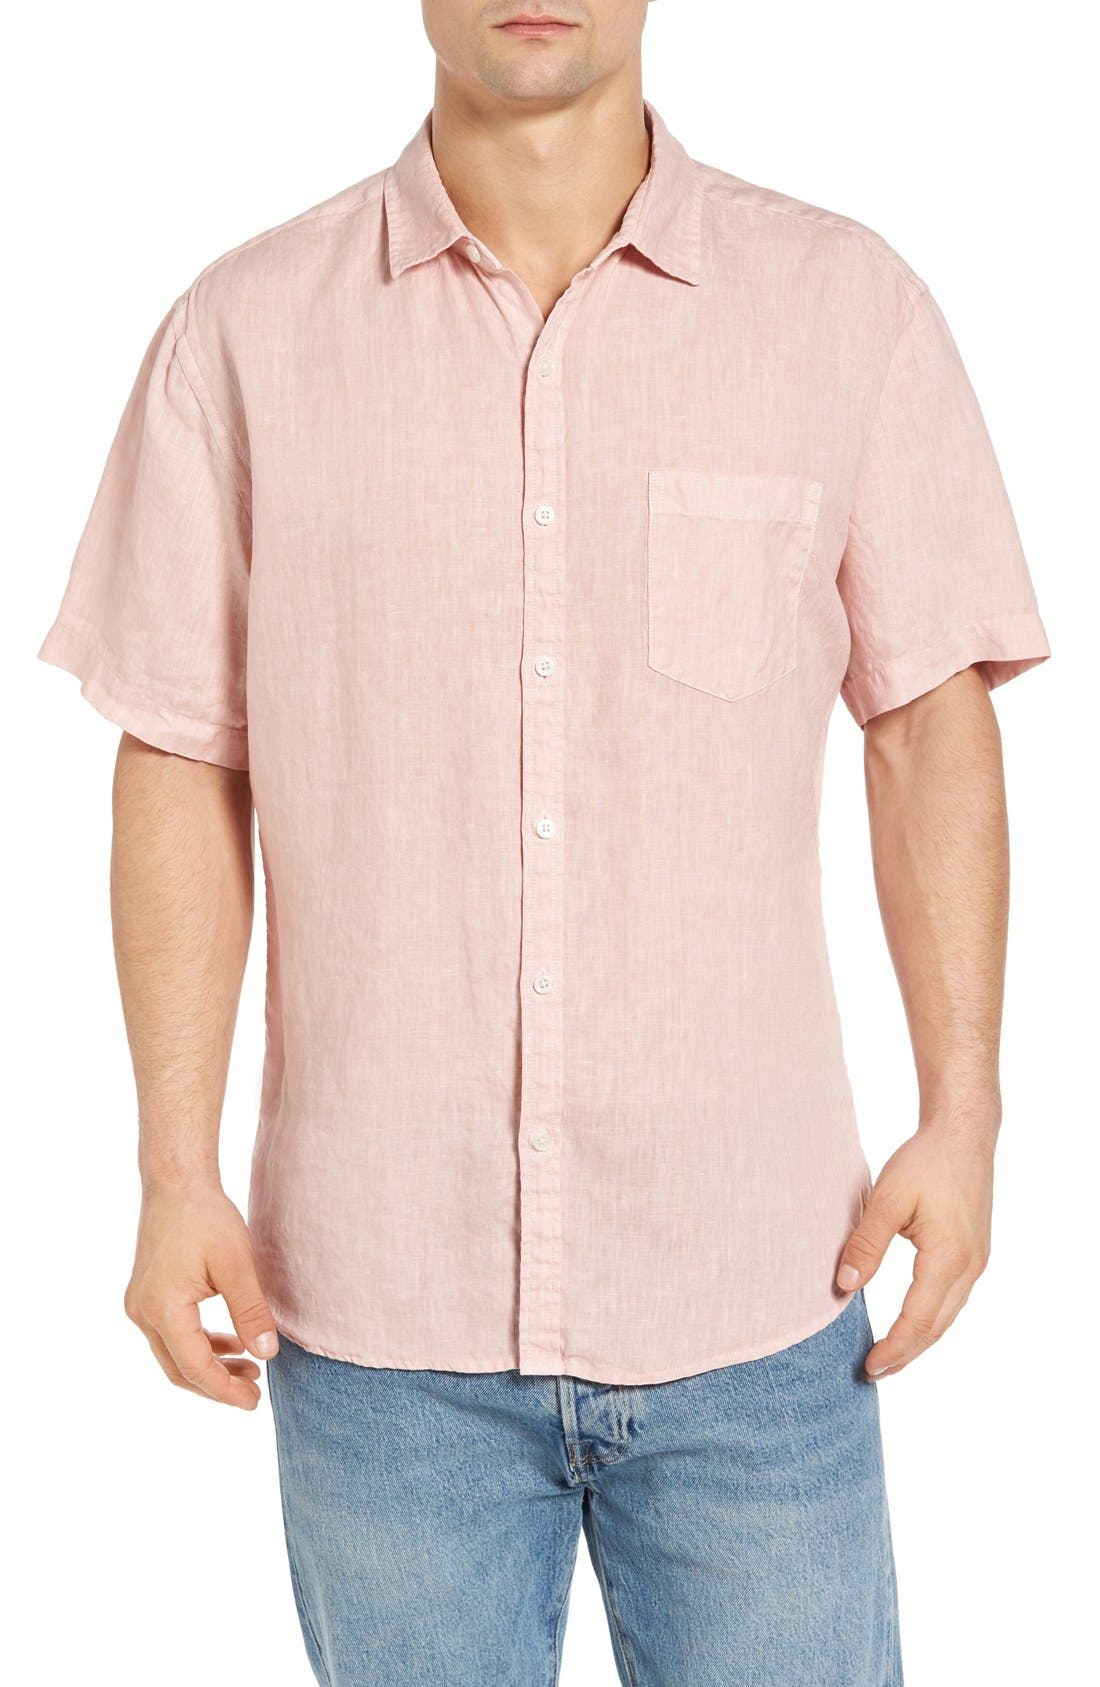 Original Paperbacks Rome Trim Fit Linen Sport Shirt